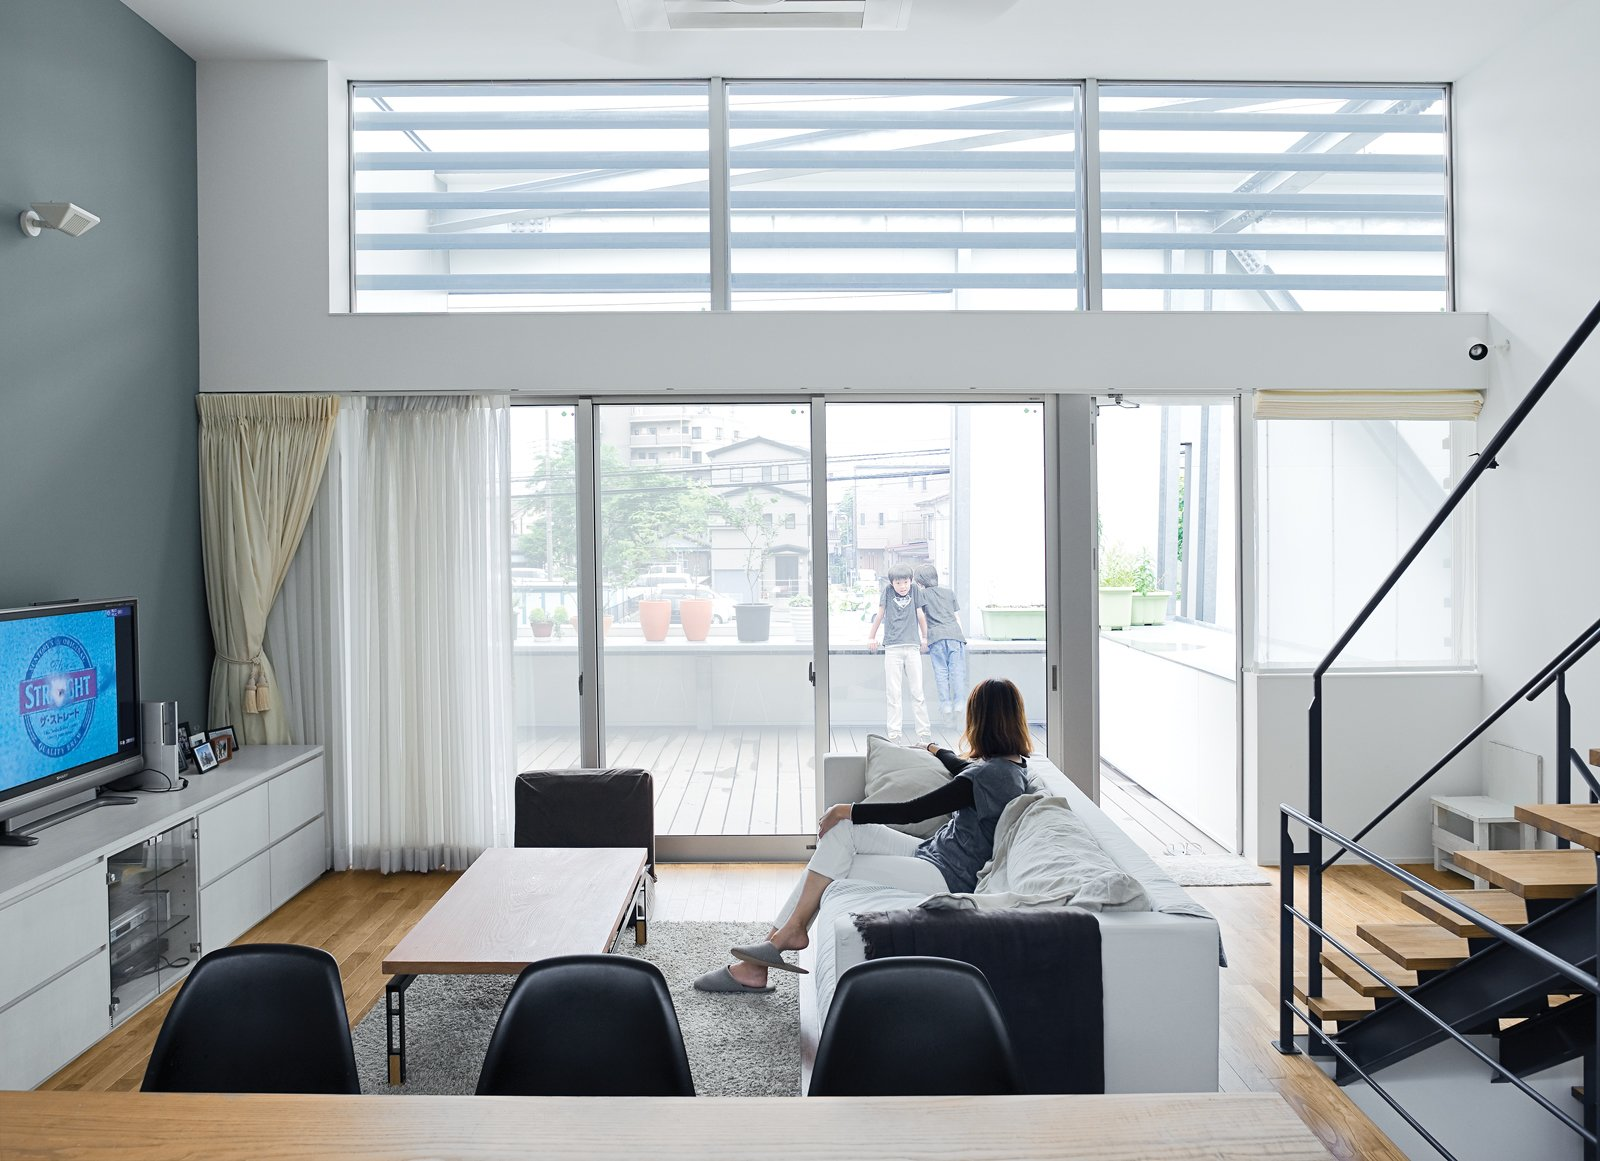 The family's hub is a high-ceilinged main room on the second level. It's open and casual and gets lovely morning light. Small Box Home with Black Metal Facade in Japan - Photo 6 of 14